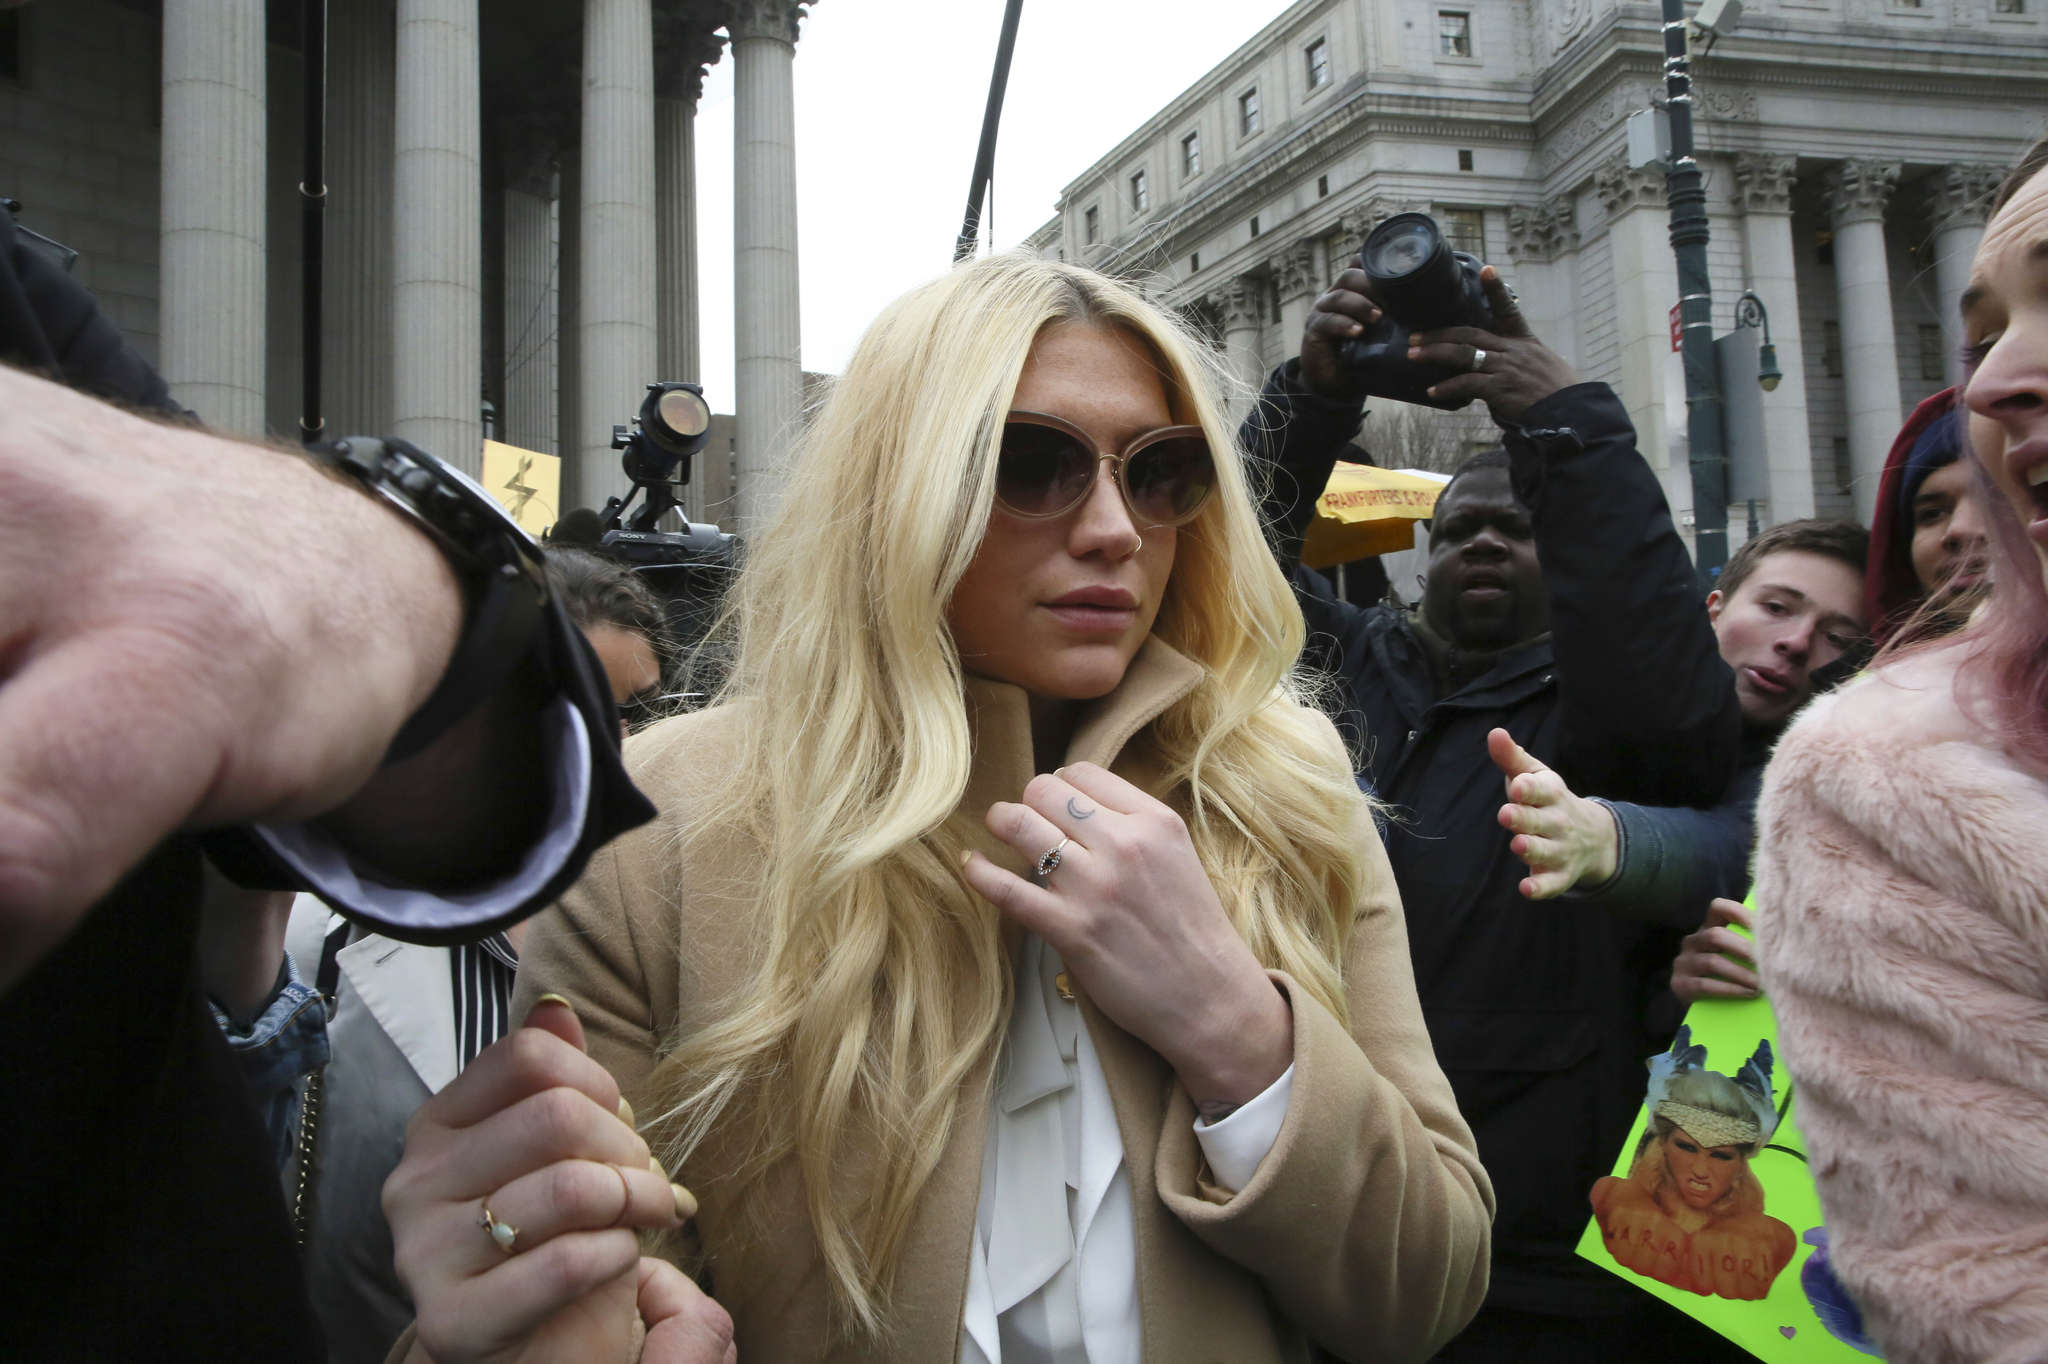 Pop star Kesha leaves court in New York on Friday. Kesha is fighting to wrest her career away from a hitmaker she says drugged, sexually abused, and psychologically tormented her - and still has exclusive rights to make records with her. Producer Dr. Luke says the singer is slinging falsehoods and ruining his reputation to try to weasel out of her recording contract and strike a new deal.